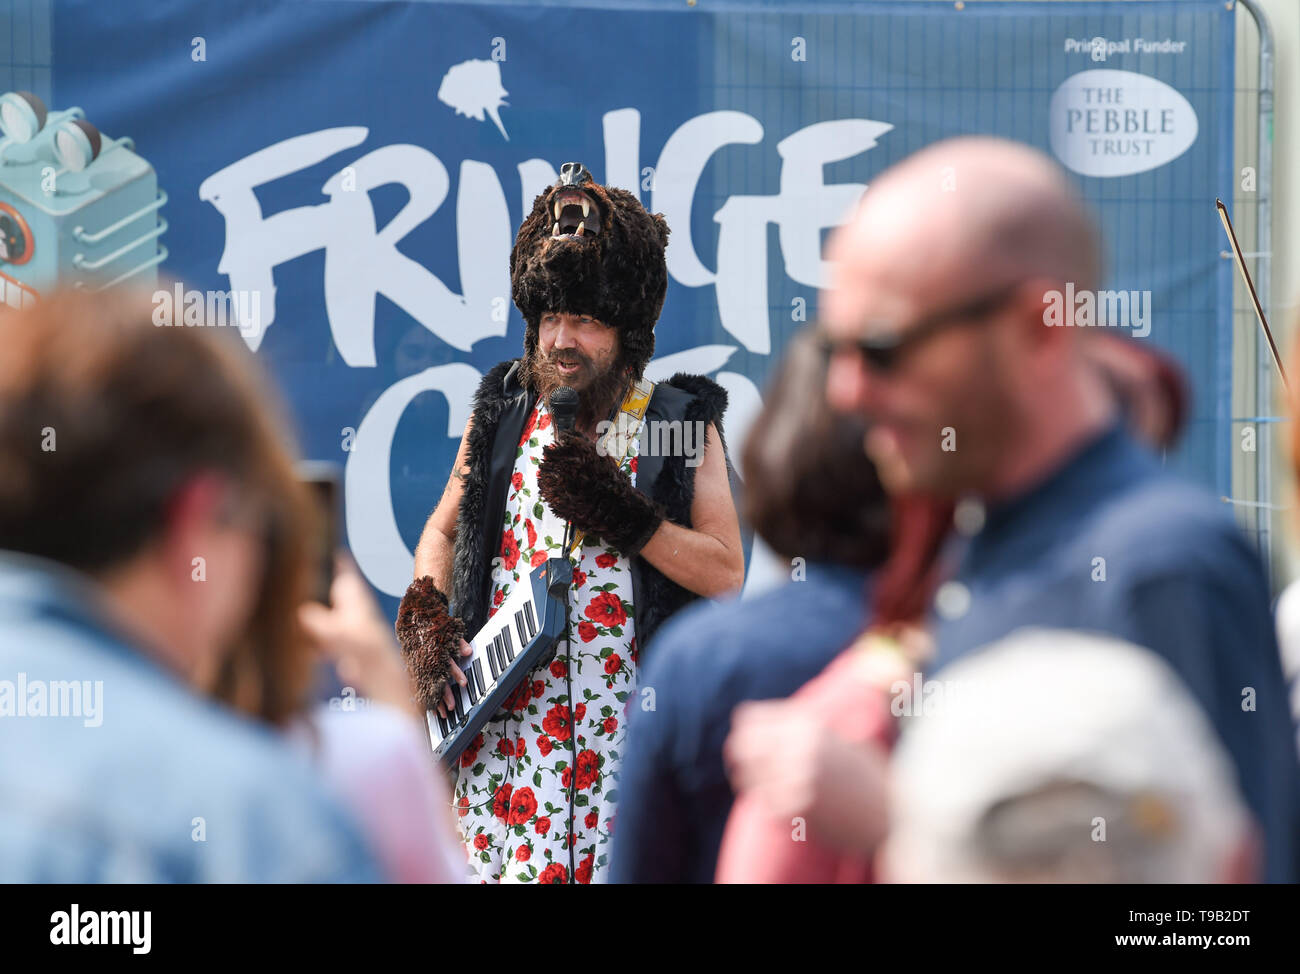 Brighton UK 18th May 2019 - A singing bear in a dress part of the 'Bear North' show at the Fringe City street entertainment which is part of the Brighton Festival 2019 . Credit : Simon Dack / Alamy Live News - Stock Image